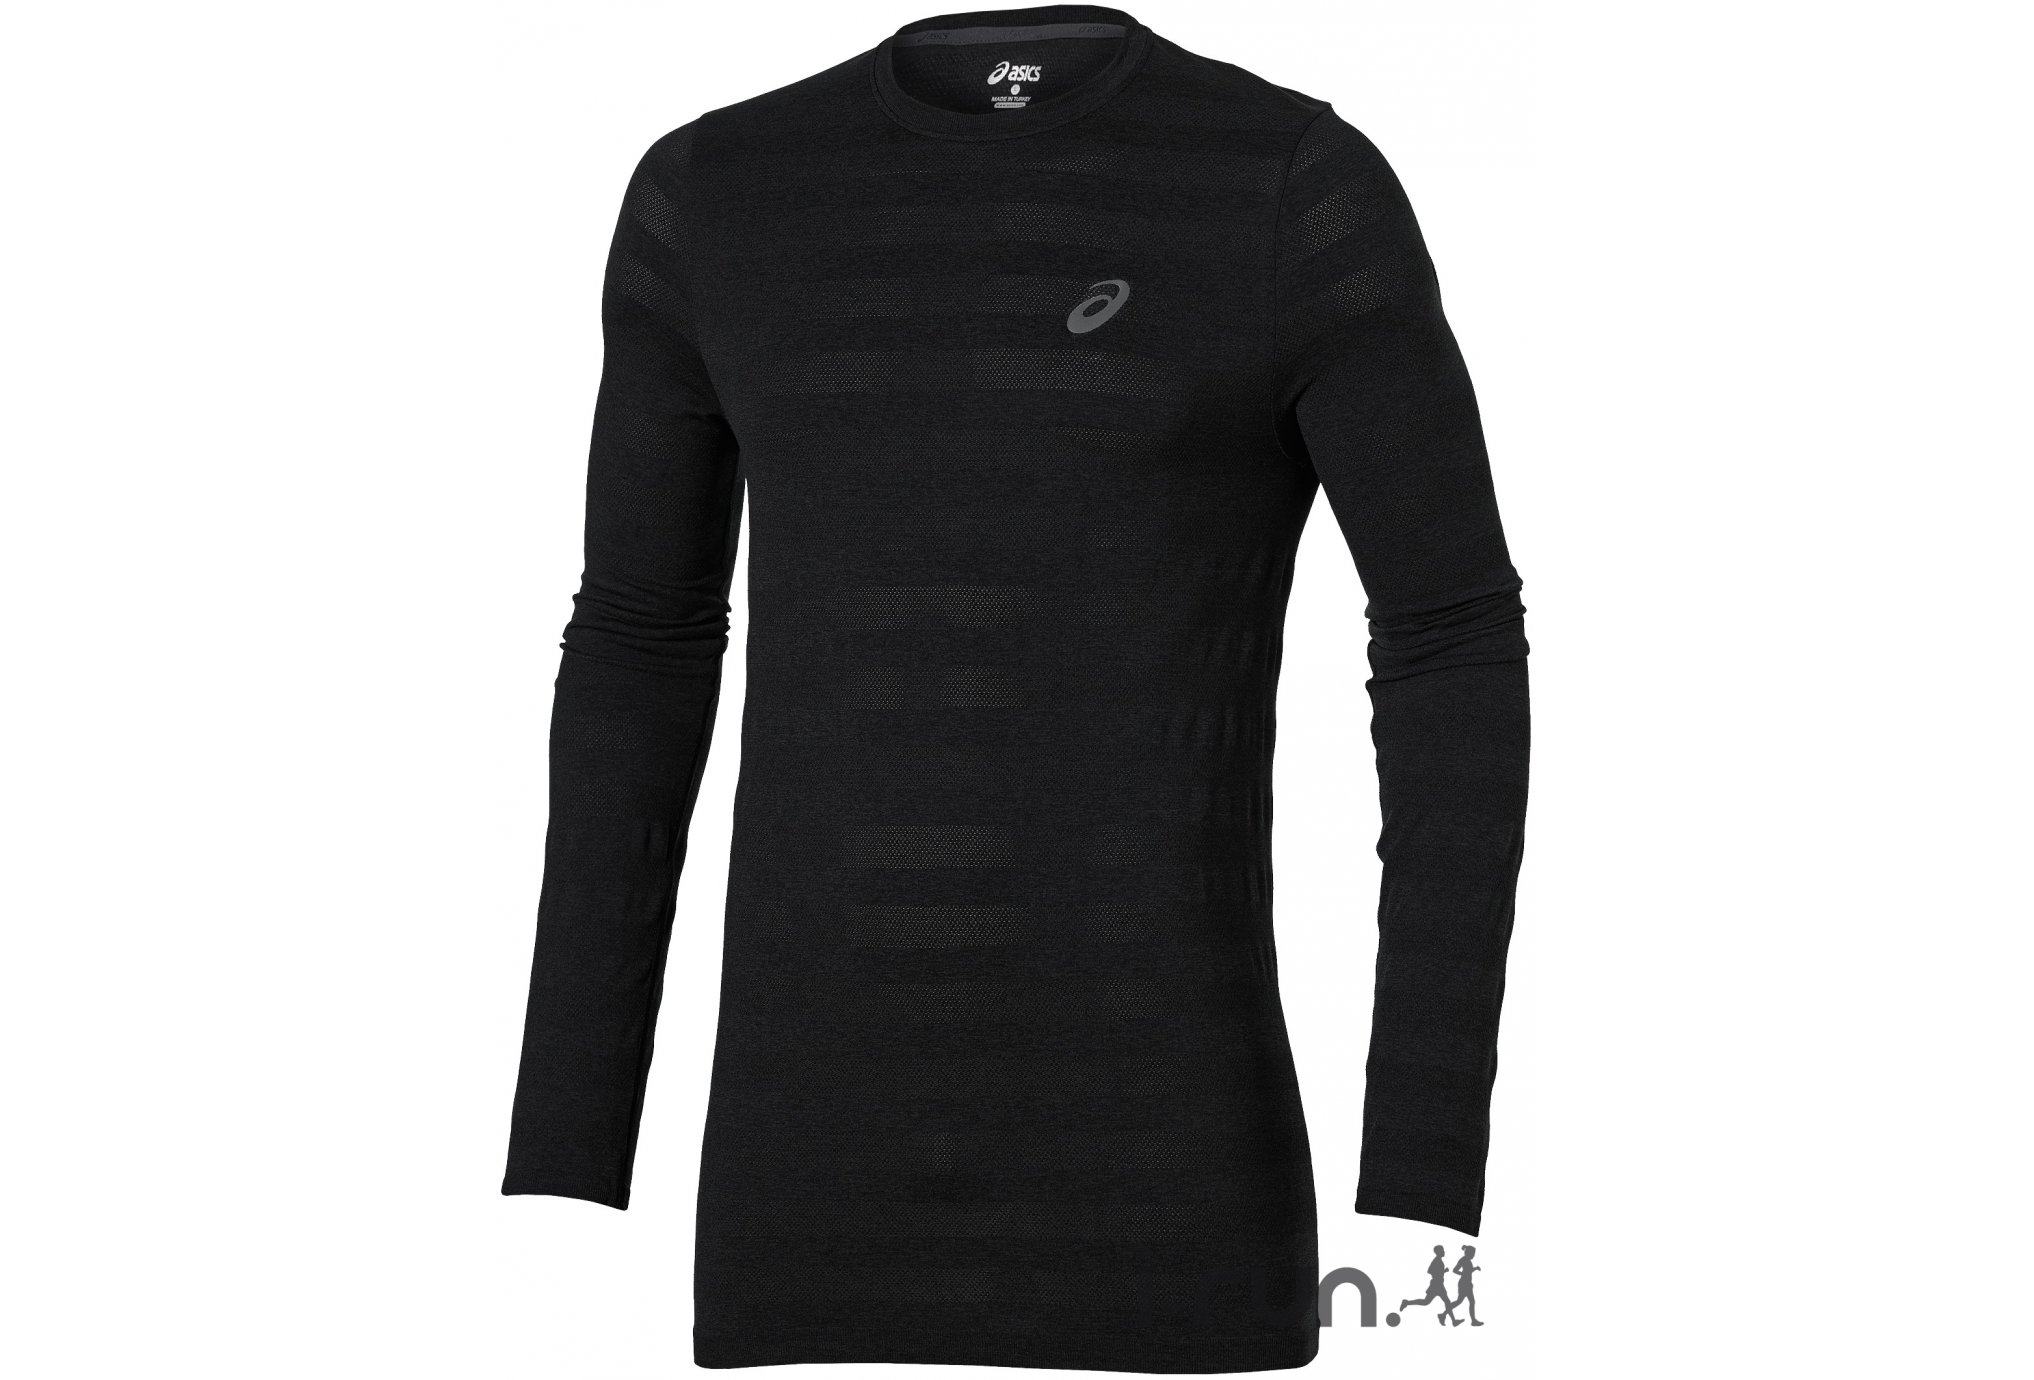 Asics Tee-Shirt LS Seamless M vêtement running homme